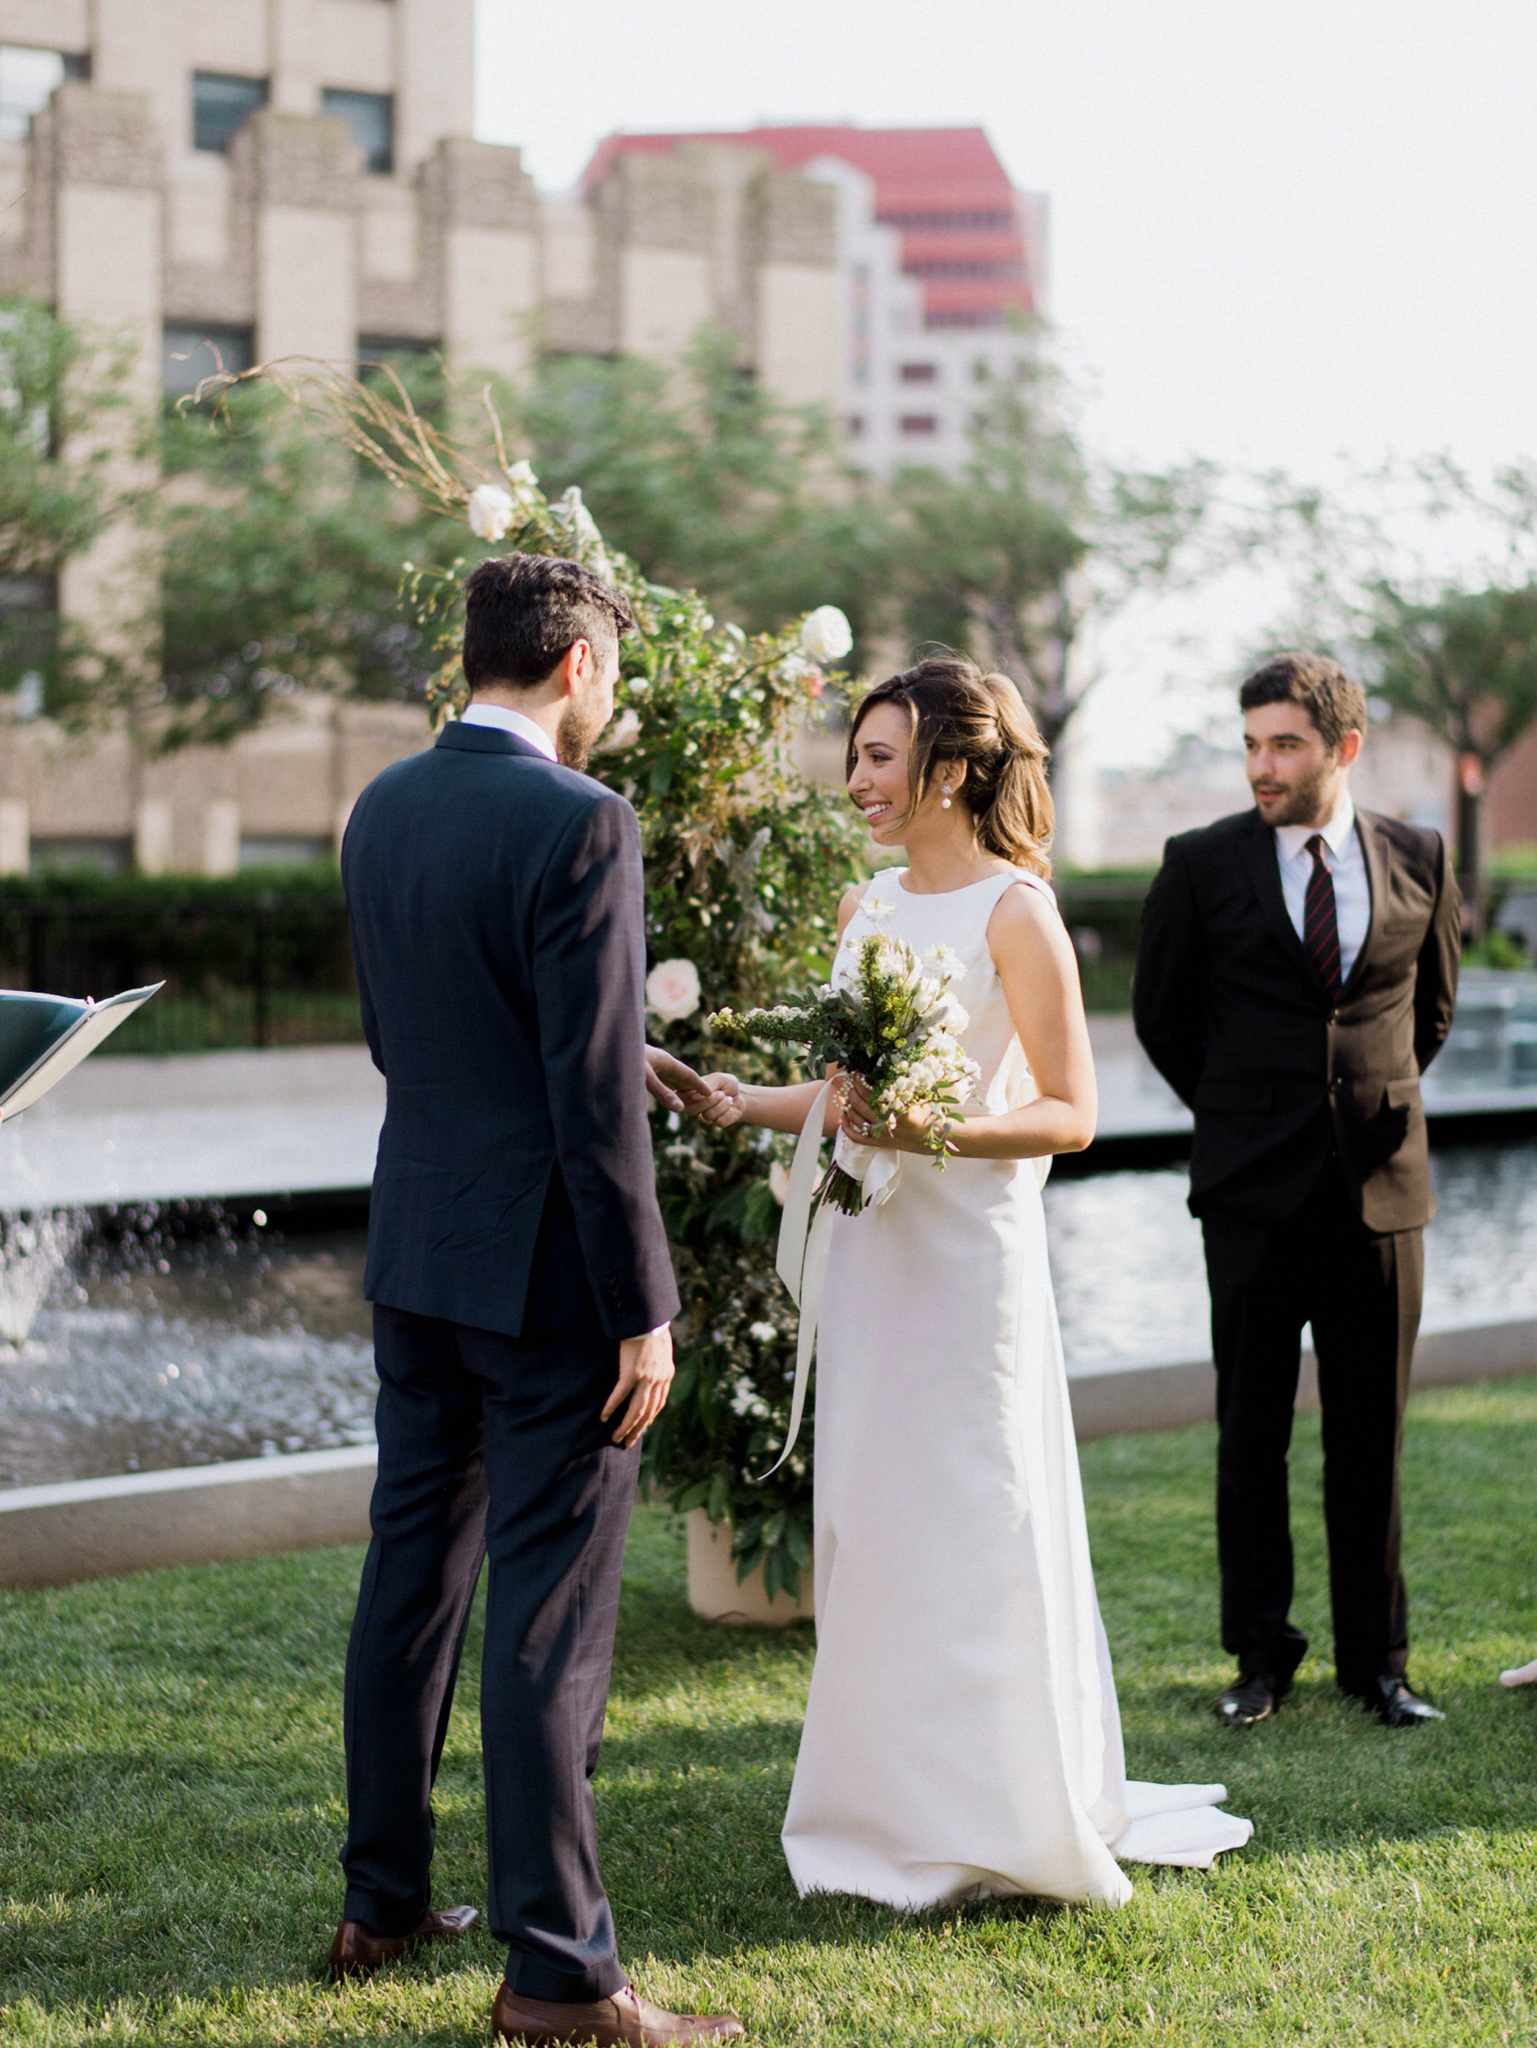 Vie de Vic | I Planned My Own Wedding and This is What I Learned | viedevic.com | Photo: Renee Hollingshead